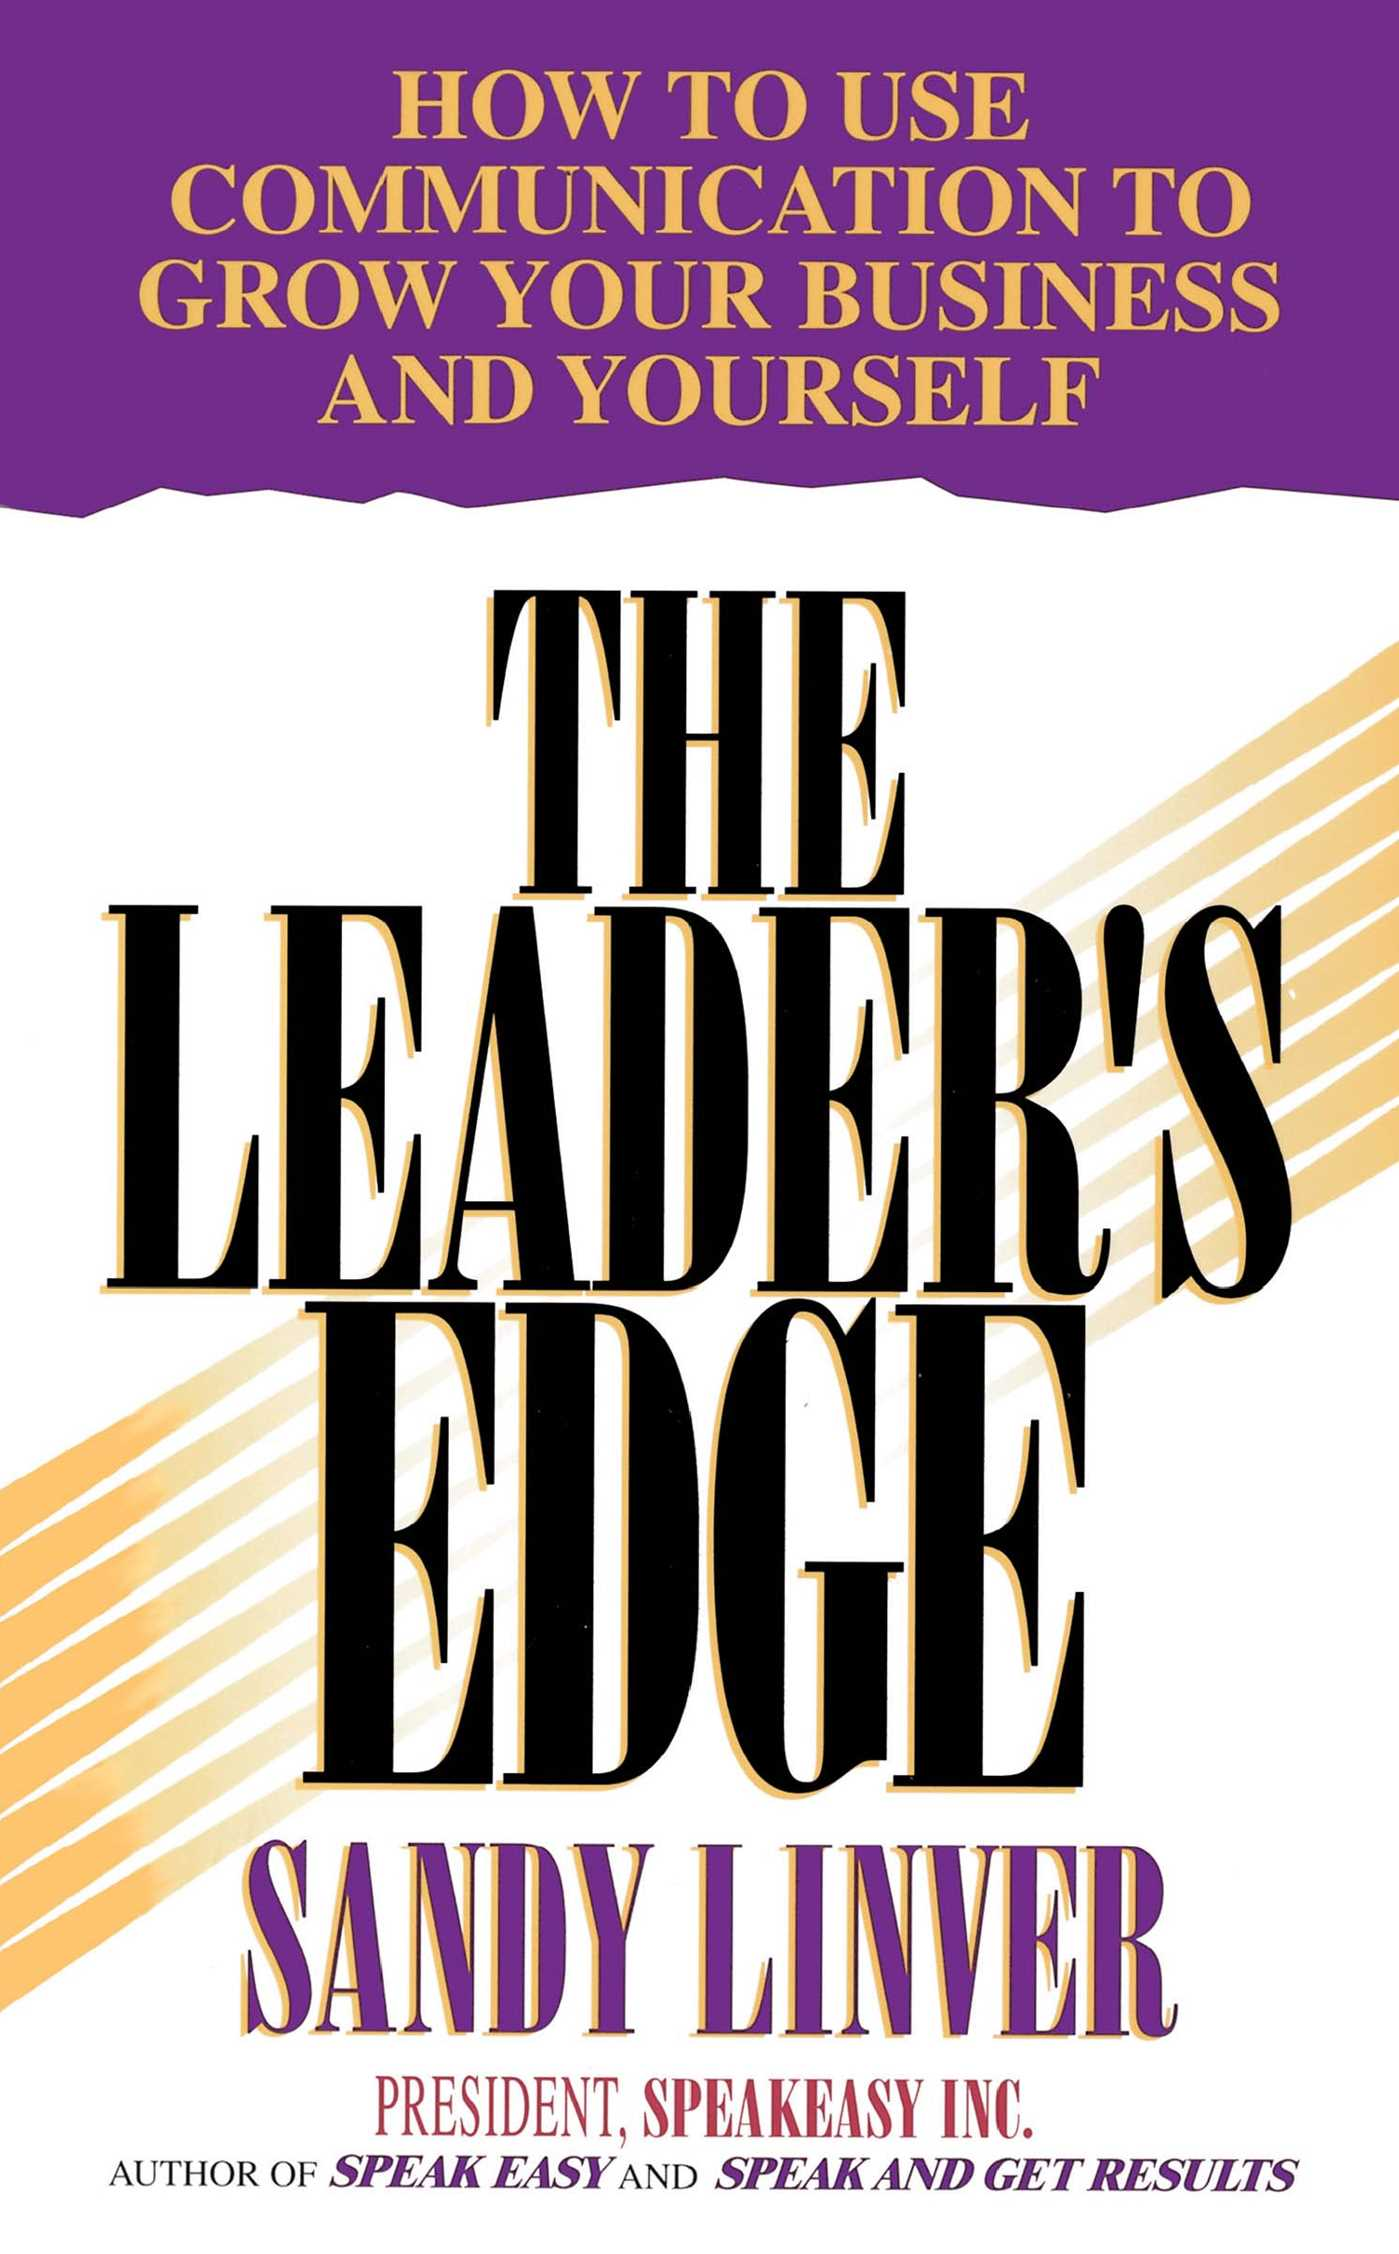 The-leaders-edge-9780684804330_hr